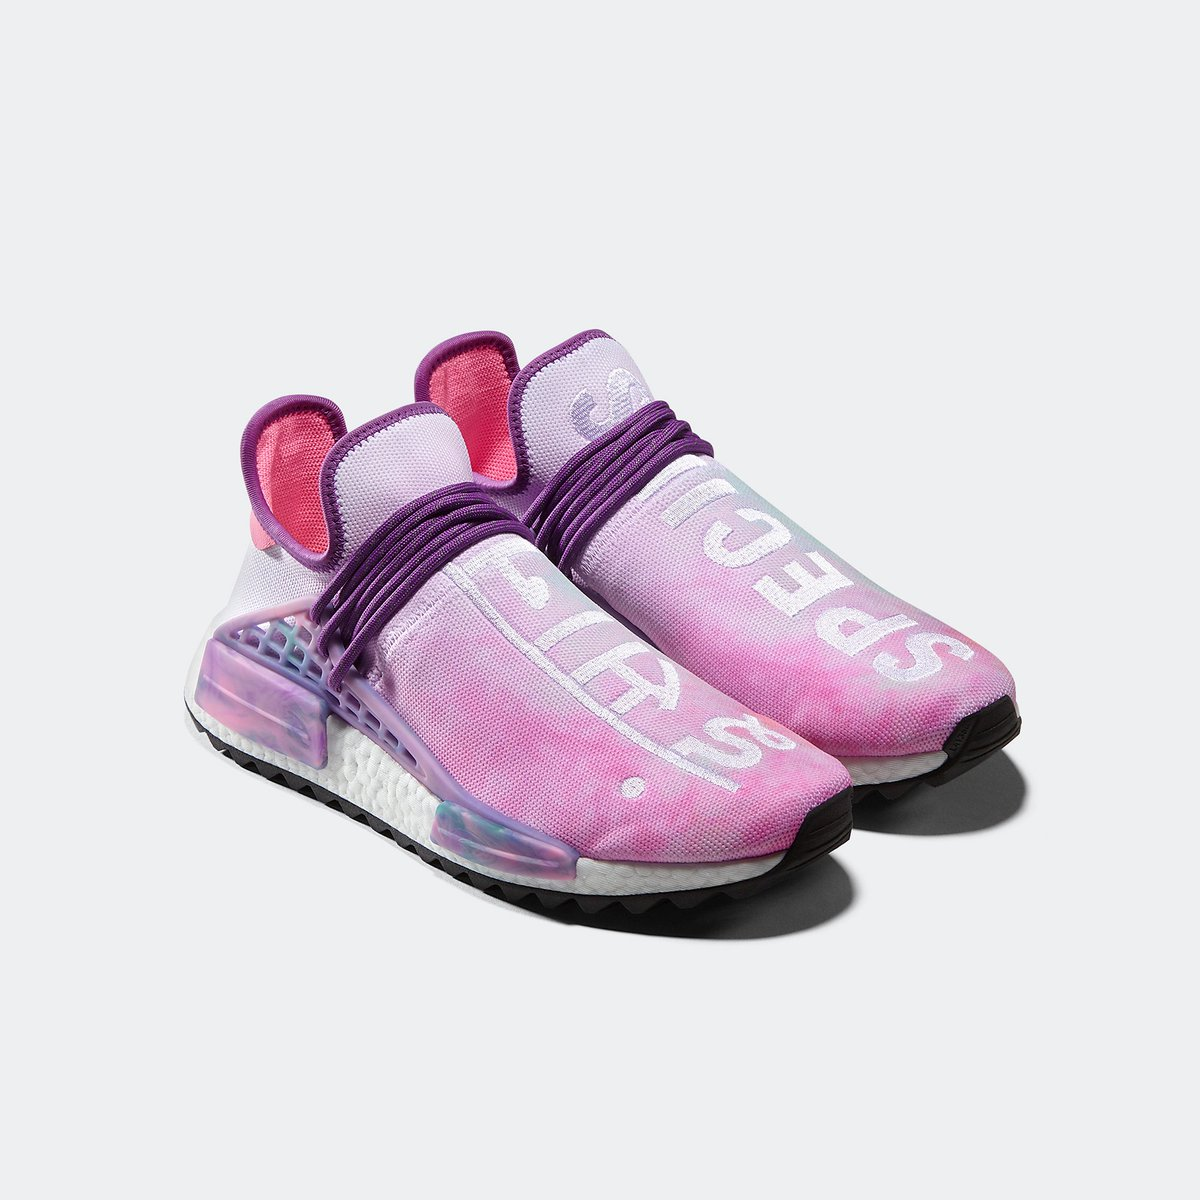 9458ea207d7bb The Pharrell x adidas Hu Holi NMD  Powder Dye  Pack will be released next  week. Which colorway are you going for  http   bit.ly 2FptnFH  pic.twitter.com  ...